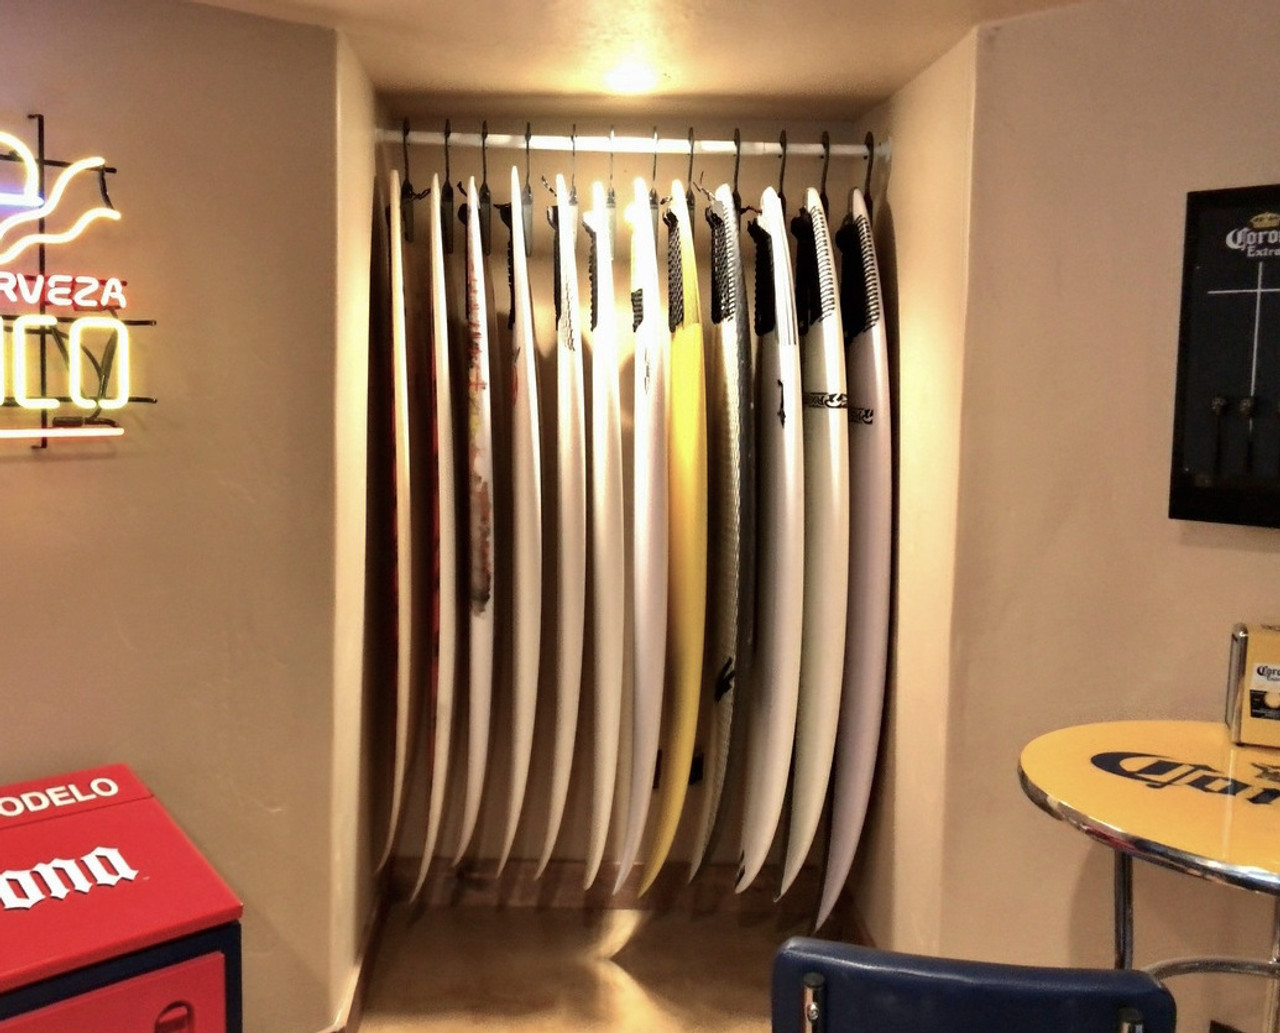 Surfboard Hanger | Retail Shop Storage and Display Rack ...